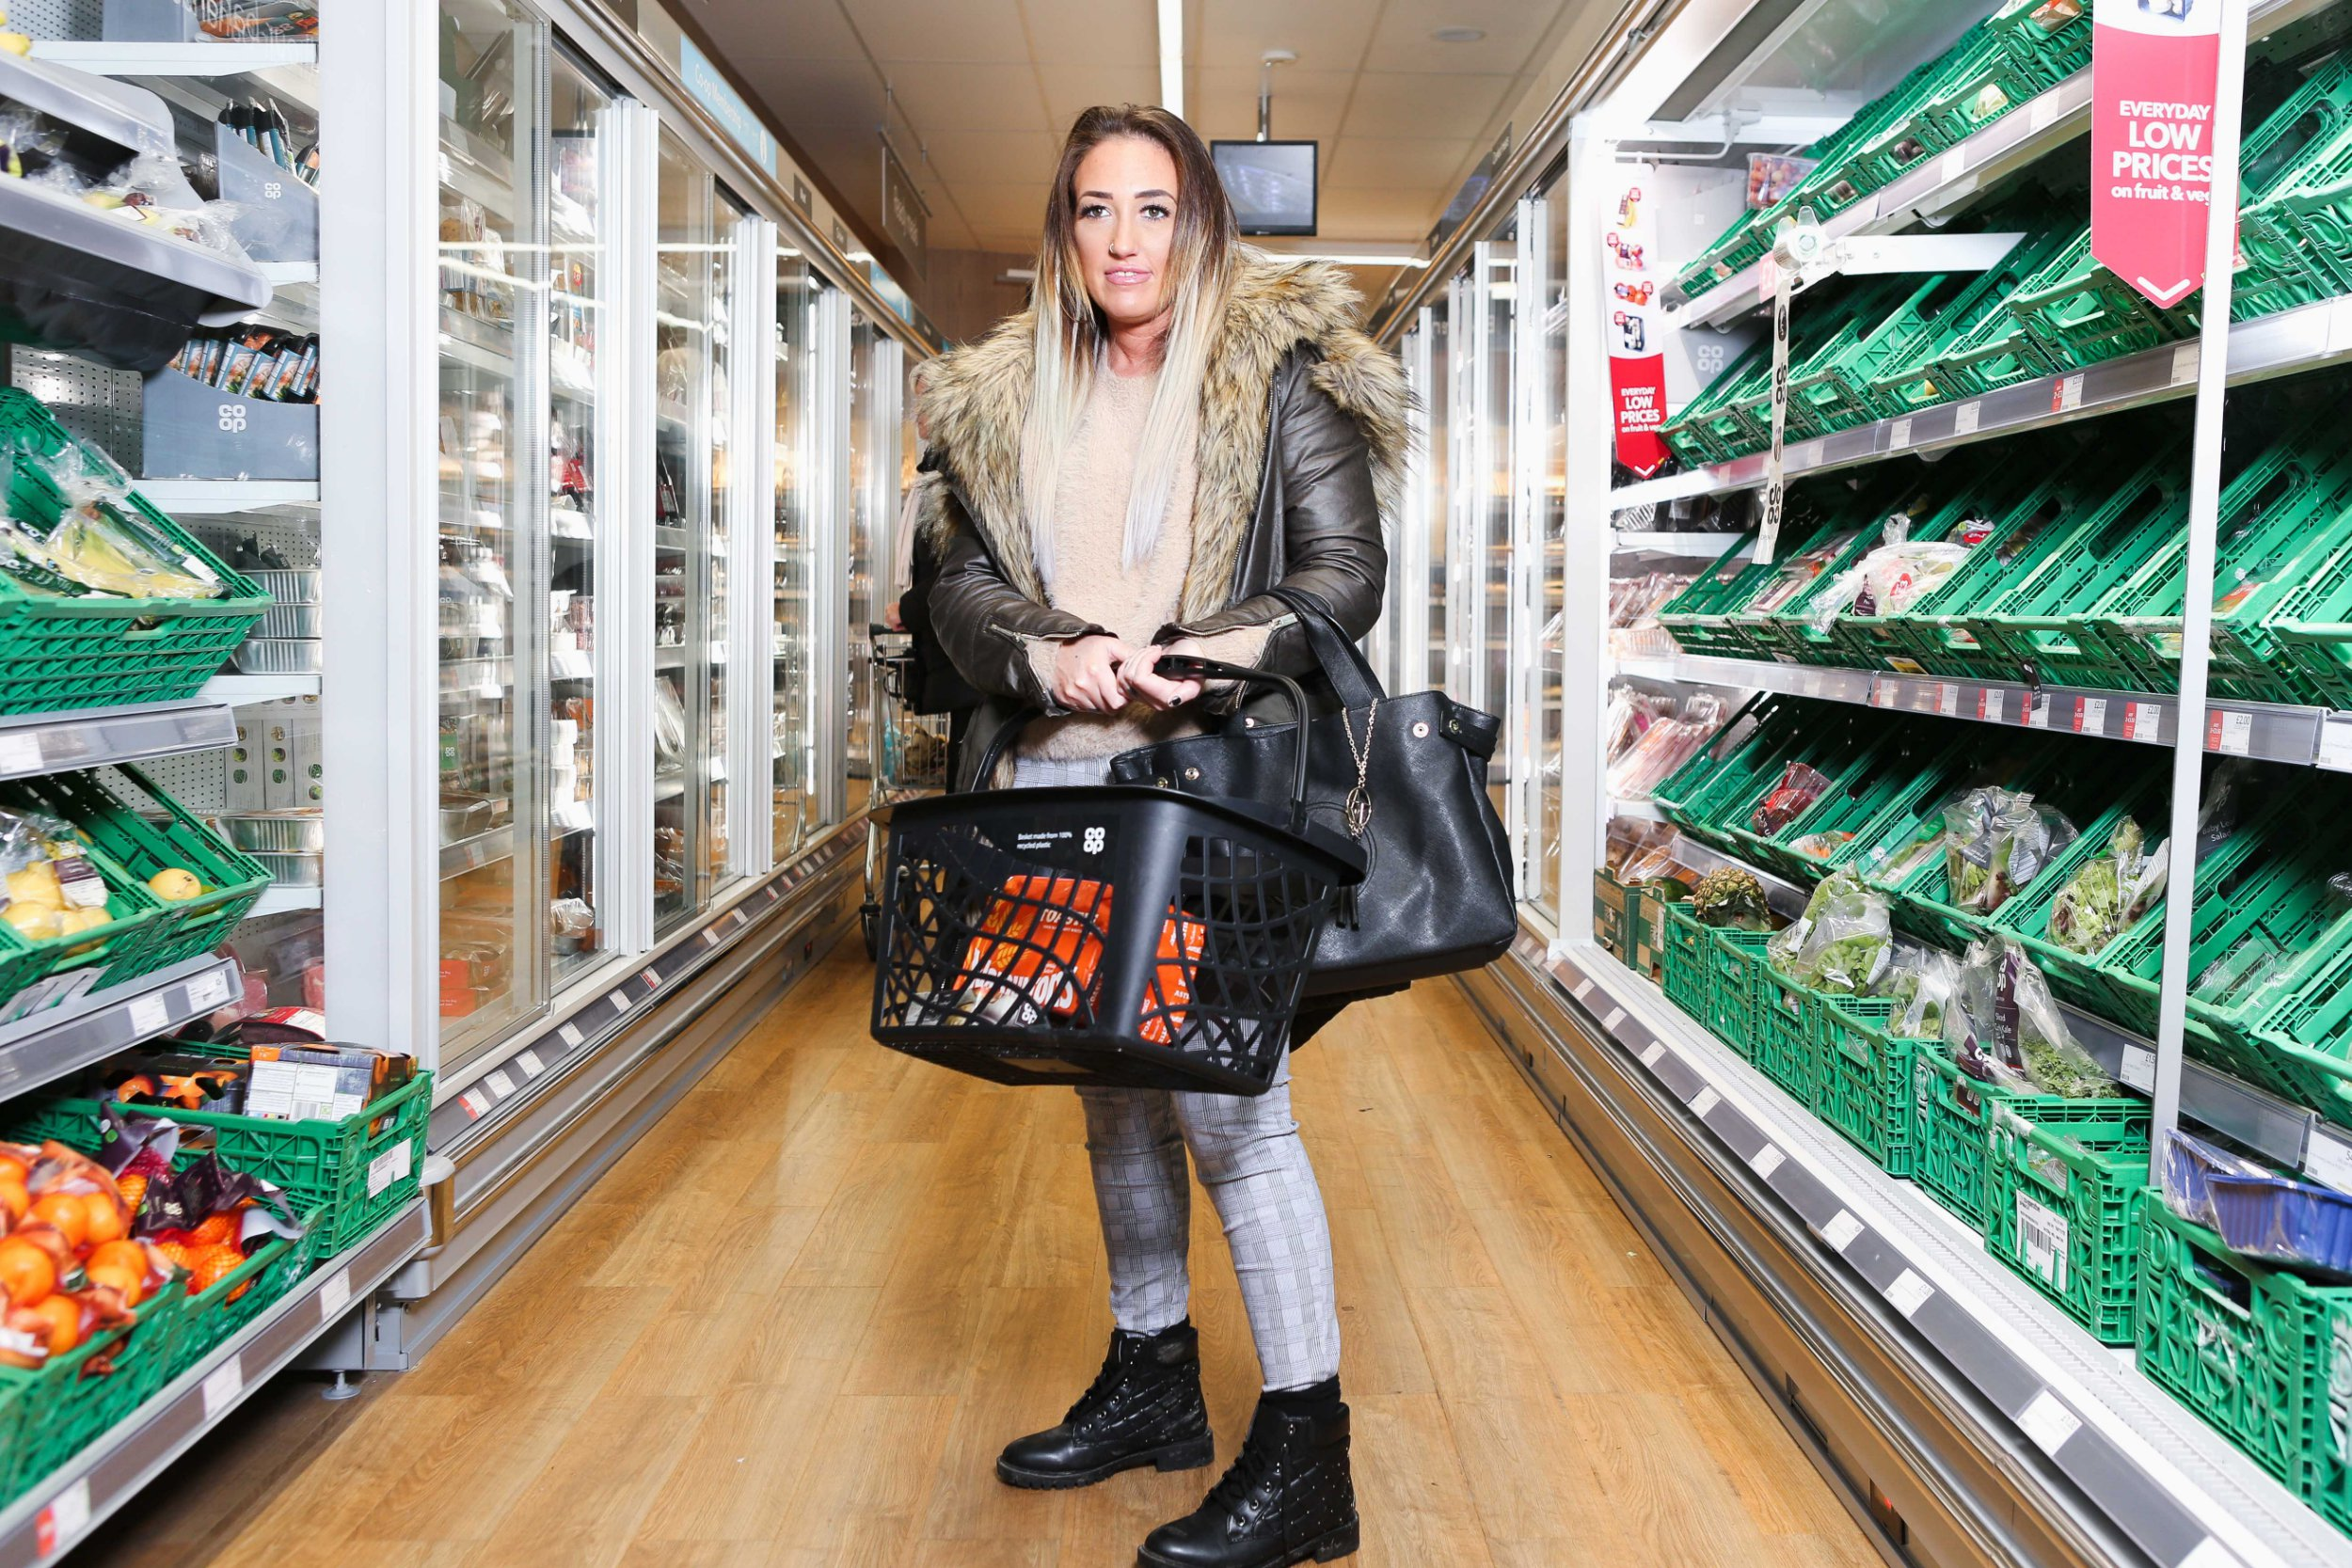 Pic by JAMES WARD/CATERS NEWS (Pictured:Emily Fox at local supermarket. Wolverhampton, West Midlands. 9/11/18 ) A mum-of-three has dubbed herself one of the loneliest women in the UK after making no friends for over a decade and visiting supermarkets just to chat to strangers.Emily Fox, 32, is sharing her experience of loneliness to illustrate that the feeling doesnt just affect the elderly. The mum-of-three from Wolverhampton, West Mids, claims she often doesnt speak to a single adult for weeks on end..SEE CATERS COPY